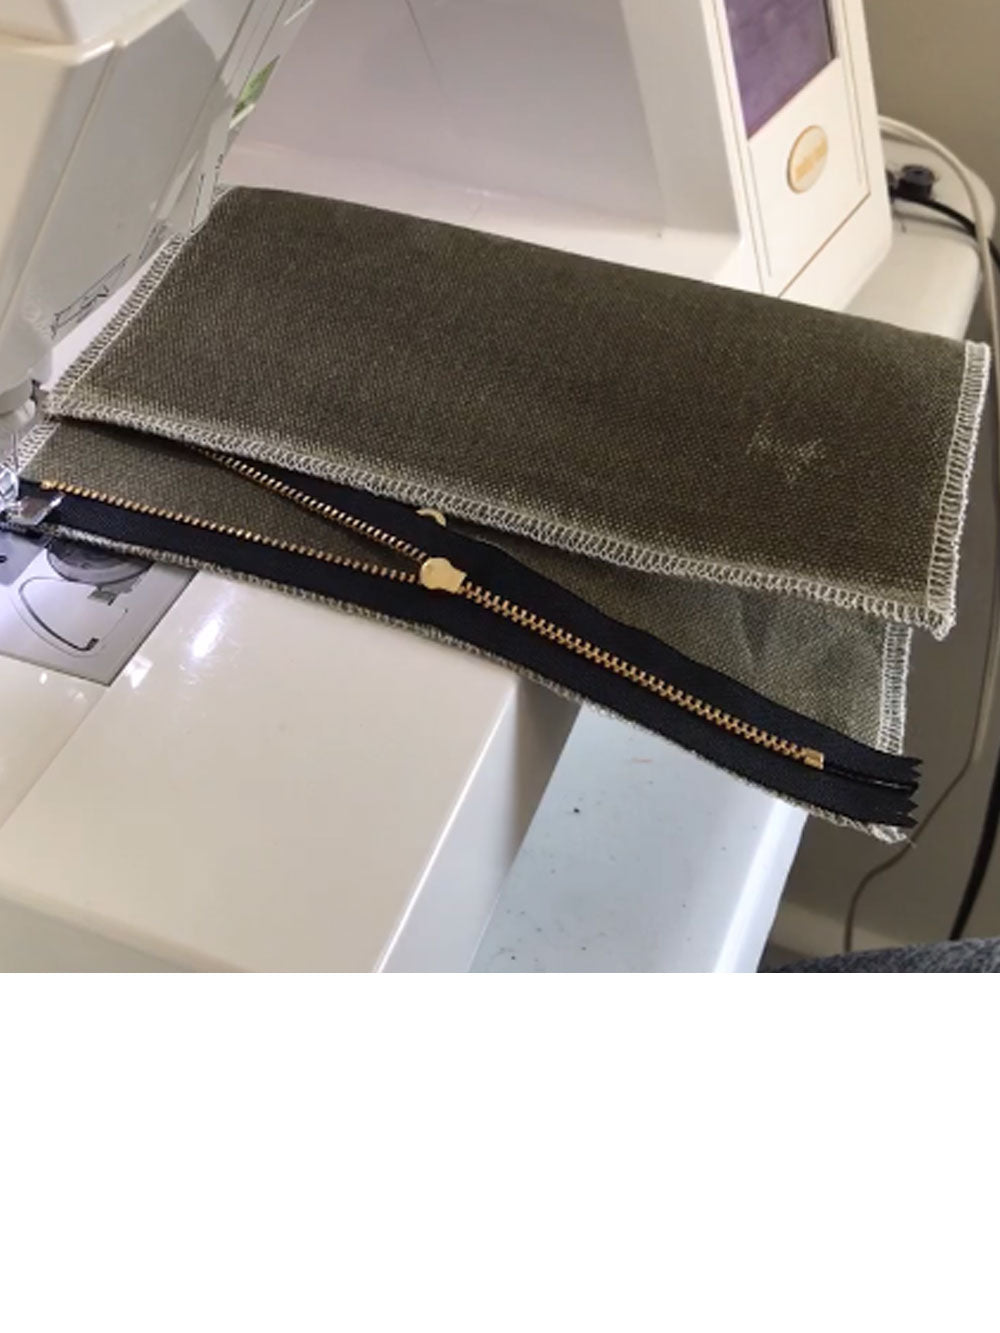 A zippered pouch in progress lays on a sewing machine.